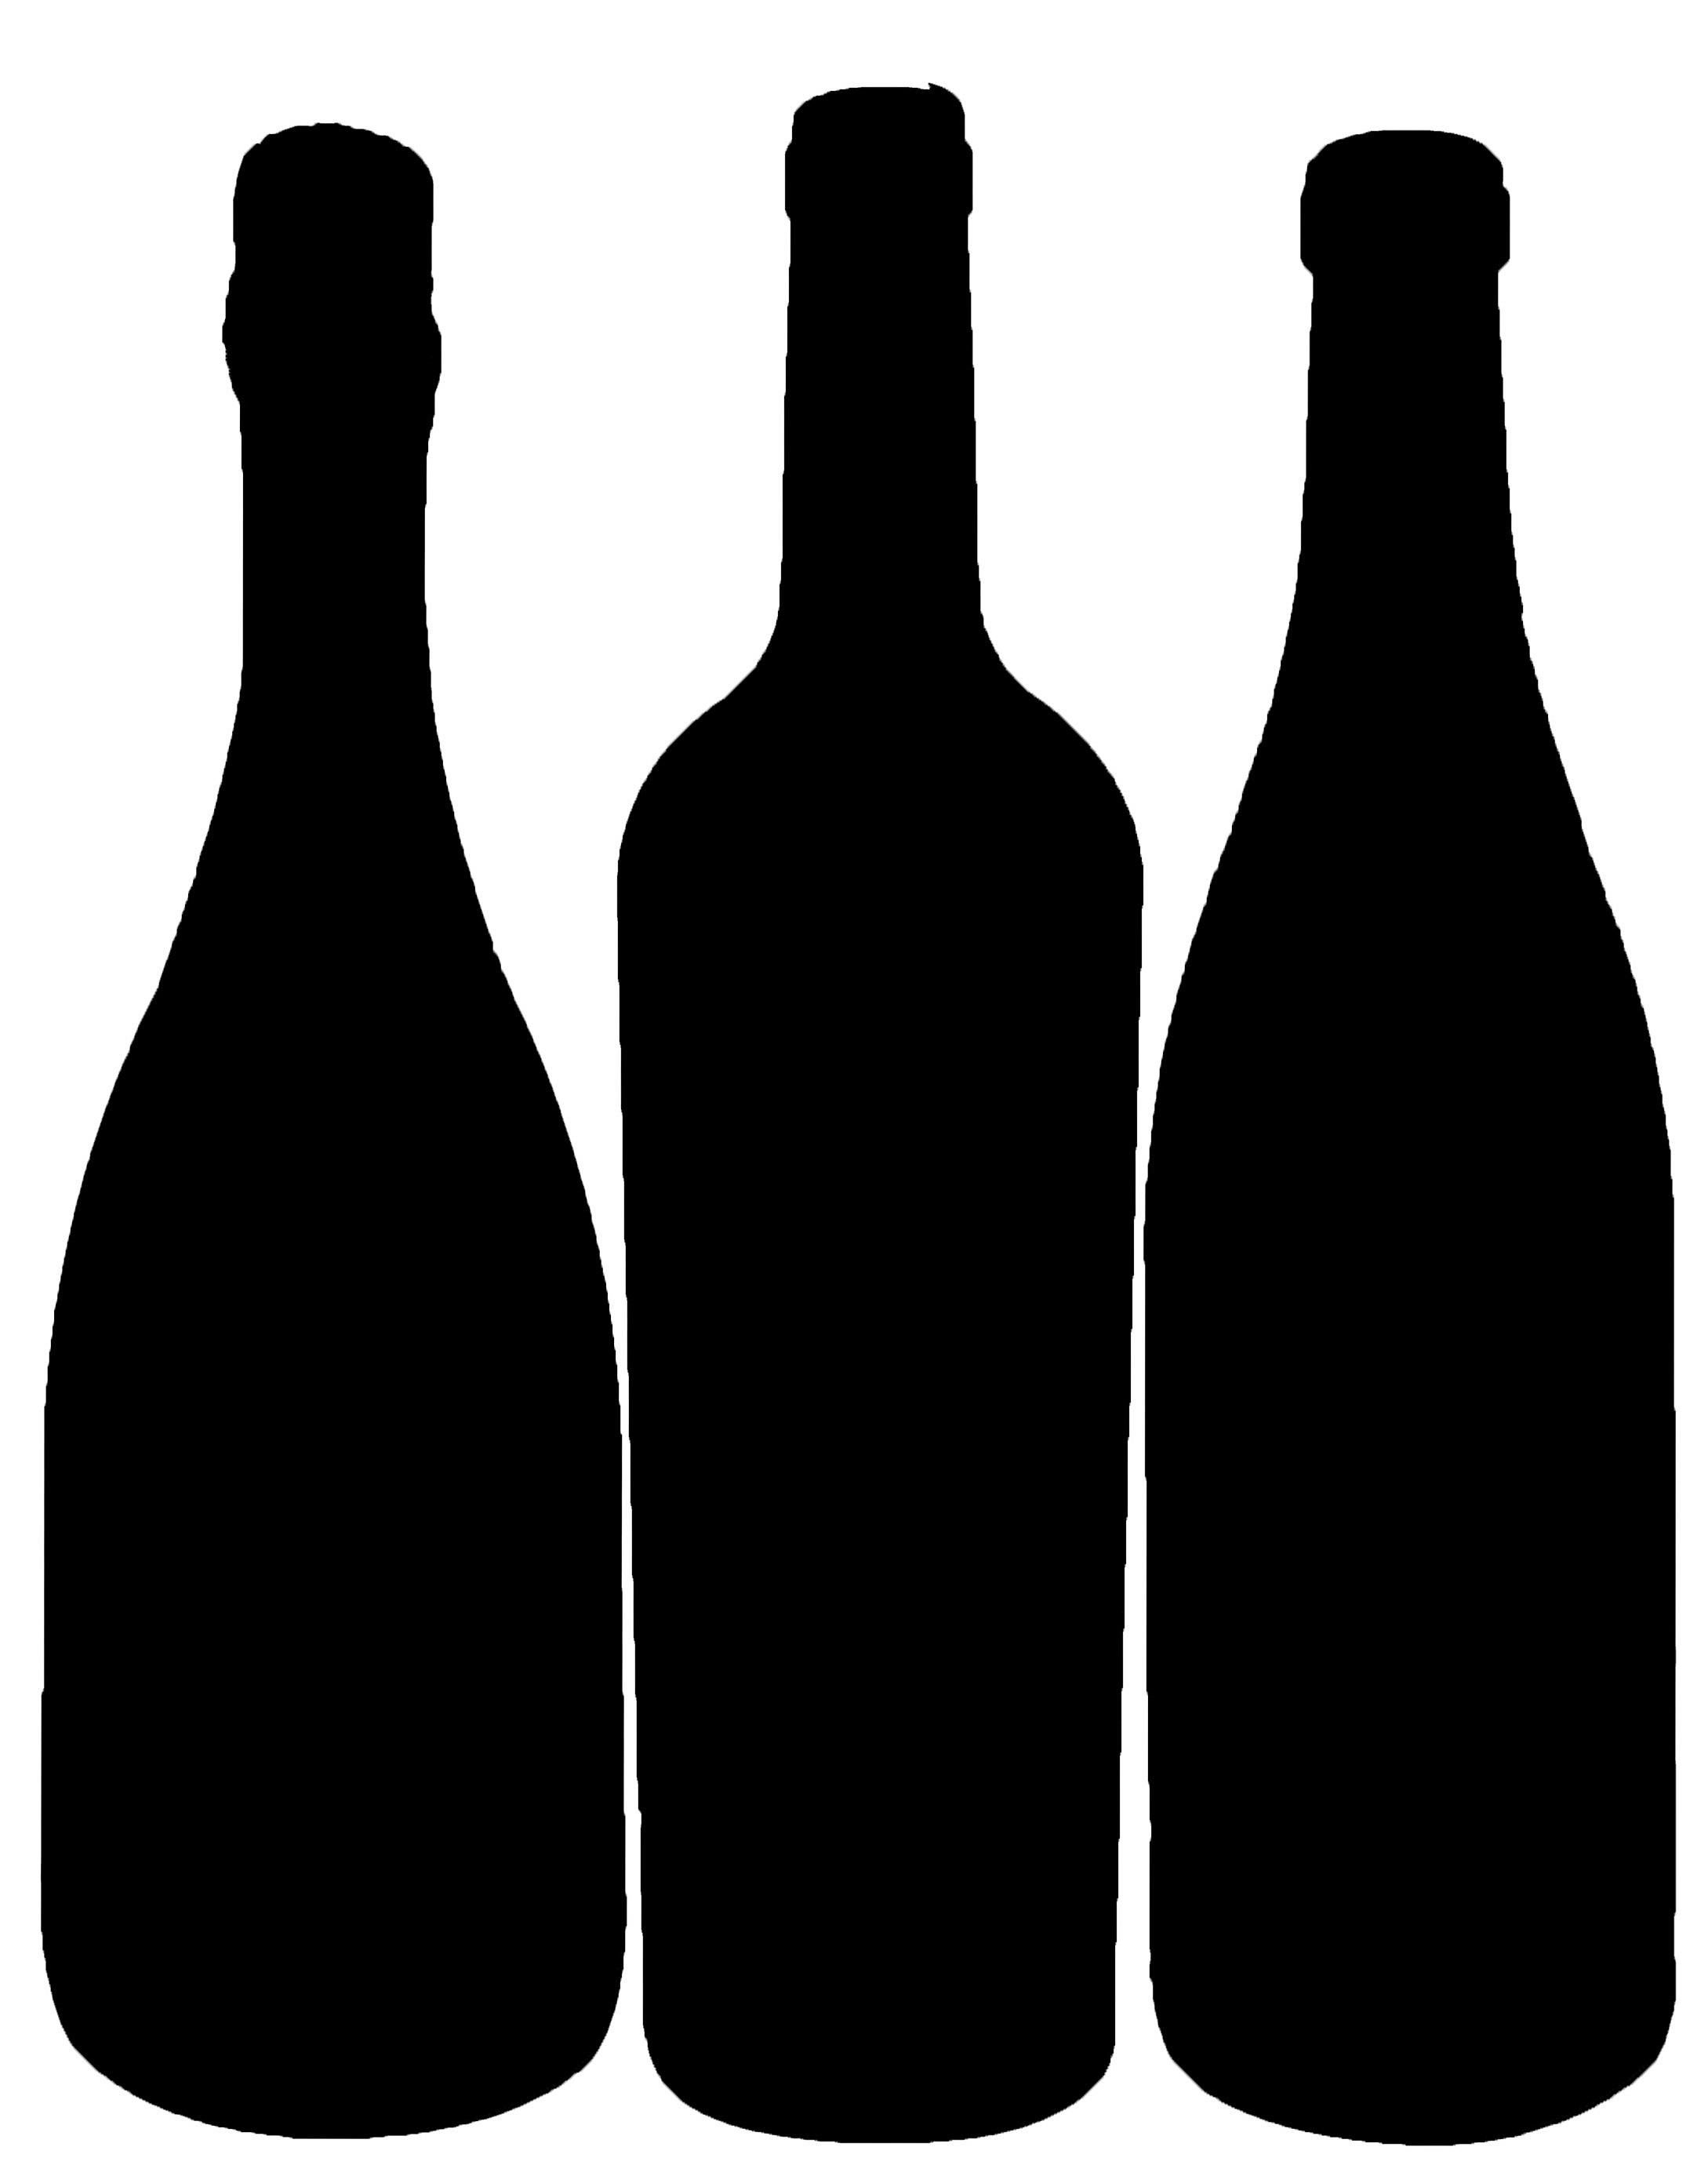 2178x2774 Beer Bottle Silhouette Clipart Best The Baby Bottles 2013